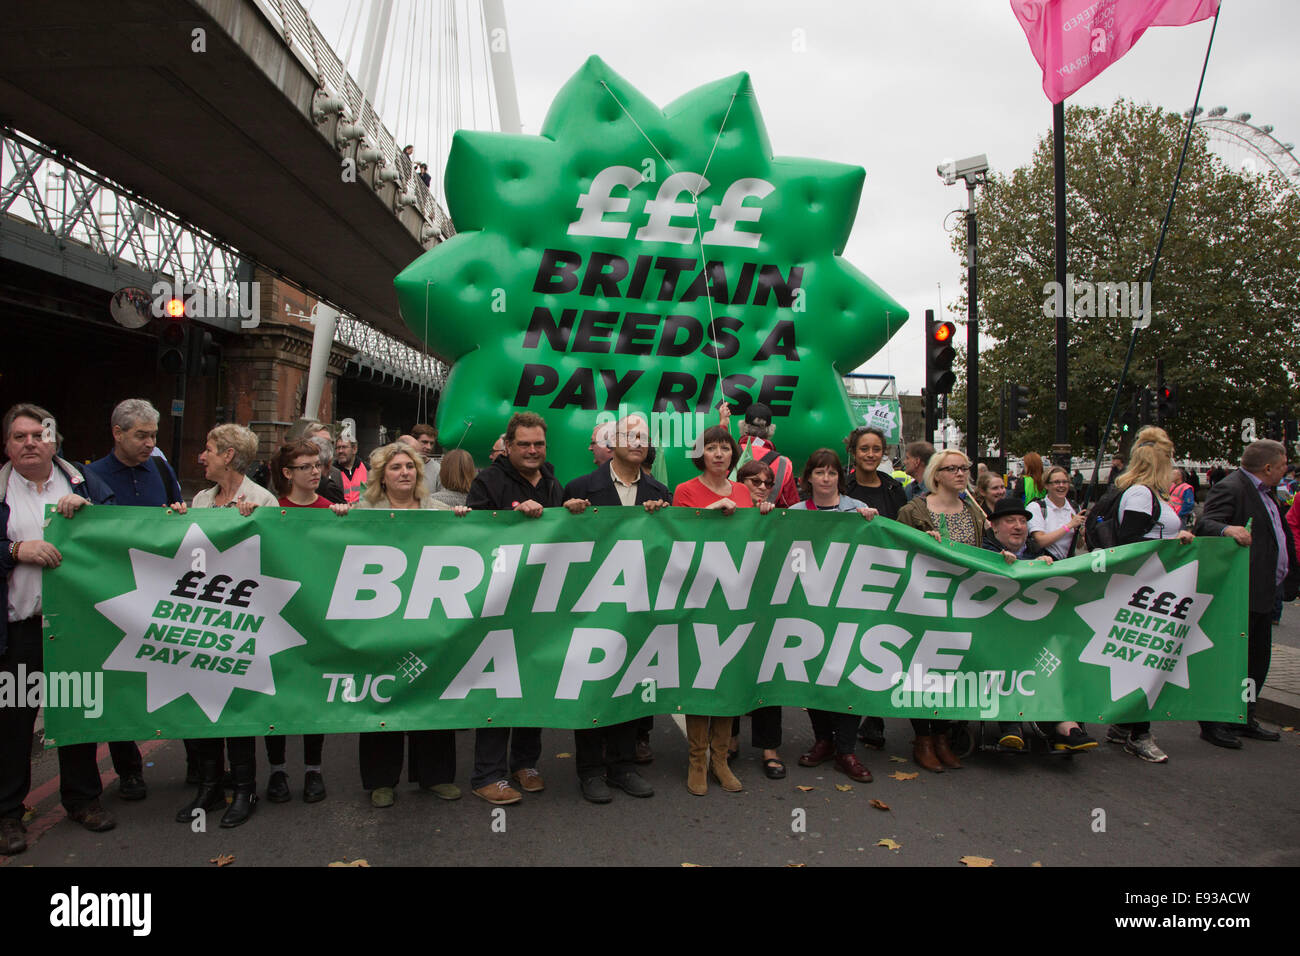 London, UK. 18 October 2014. The head of the parade with union representatives at Embankment. Britain Needs A Payrise: - Stock Image